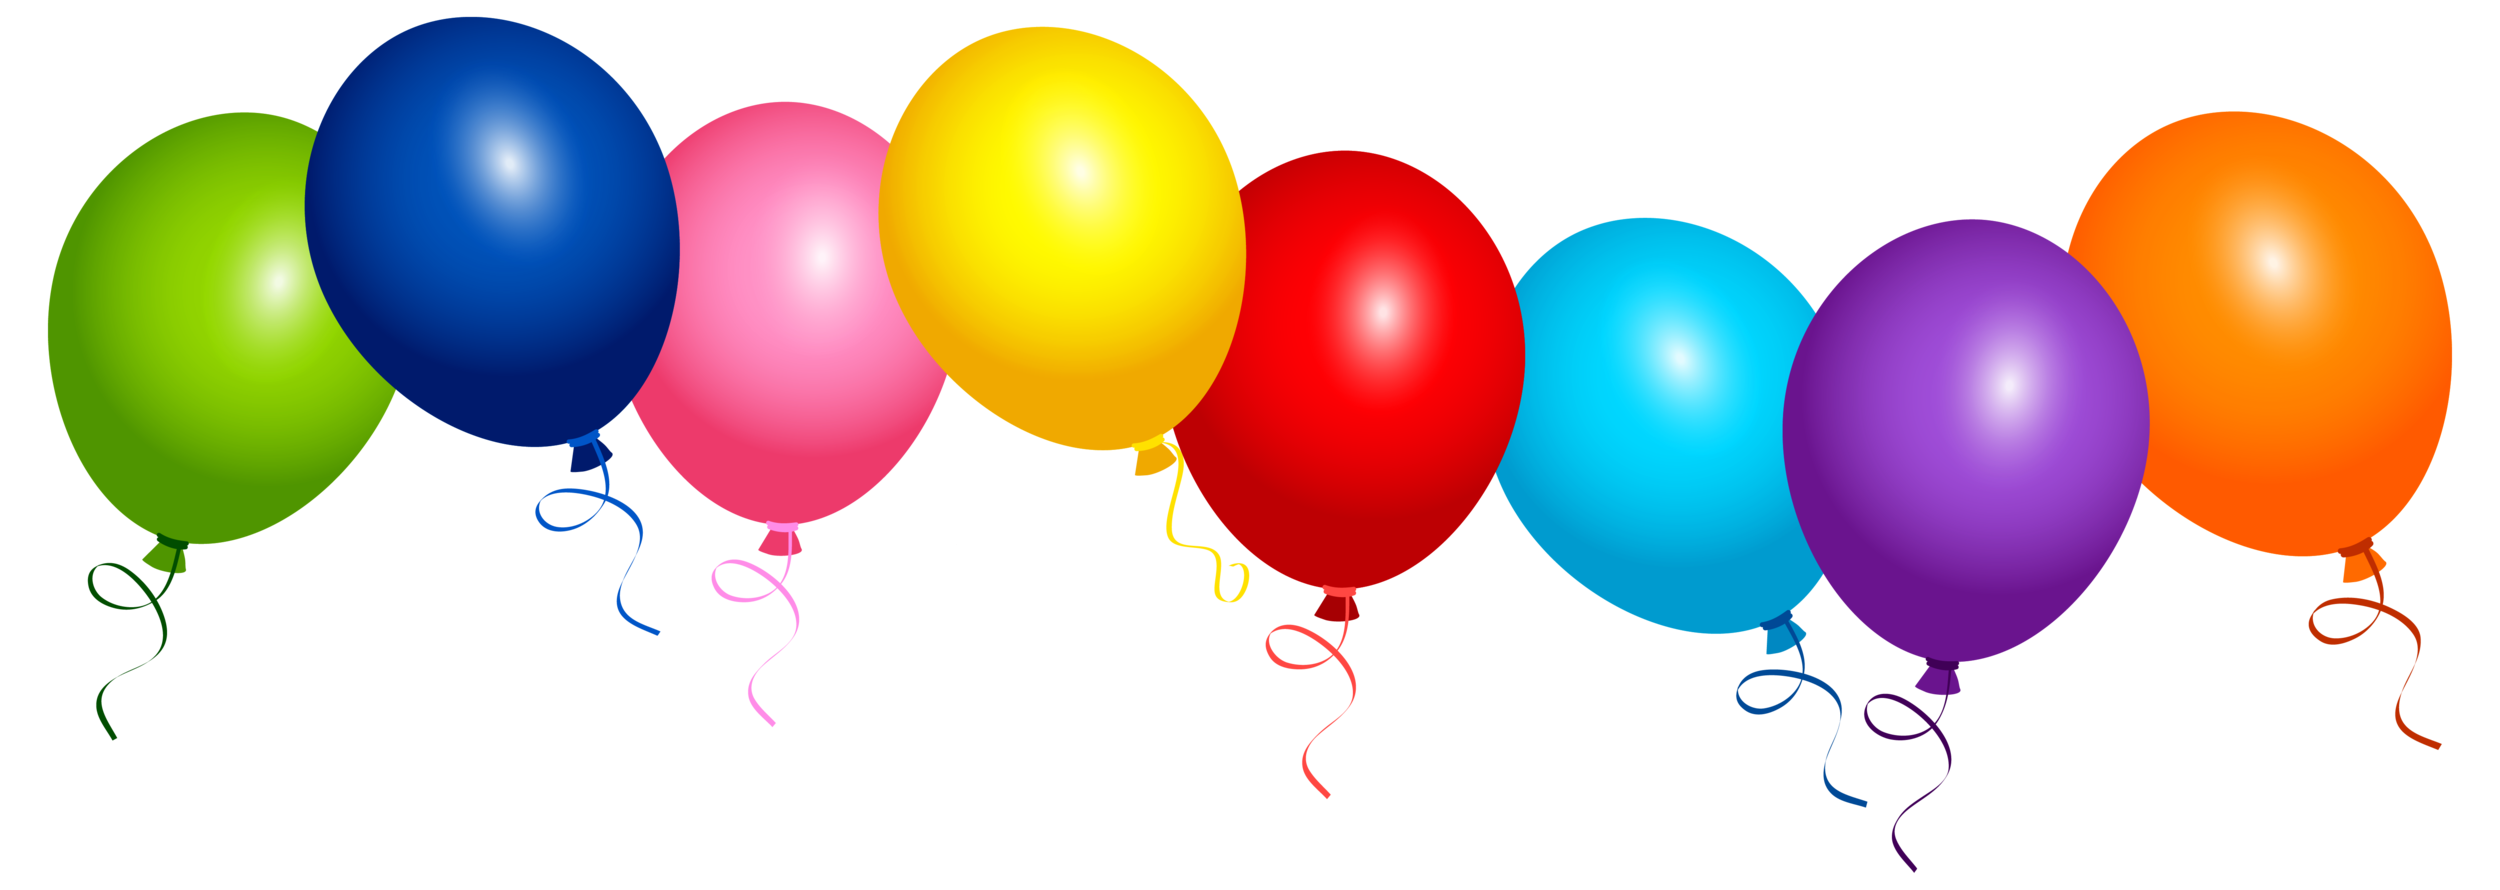 printable-balloons-clipart-1.png